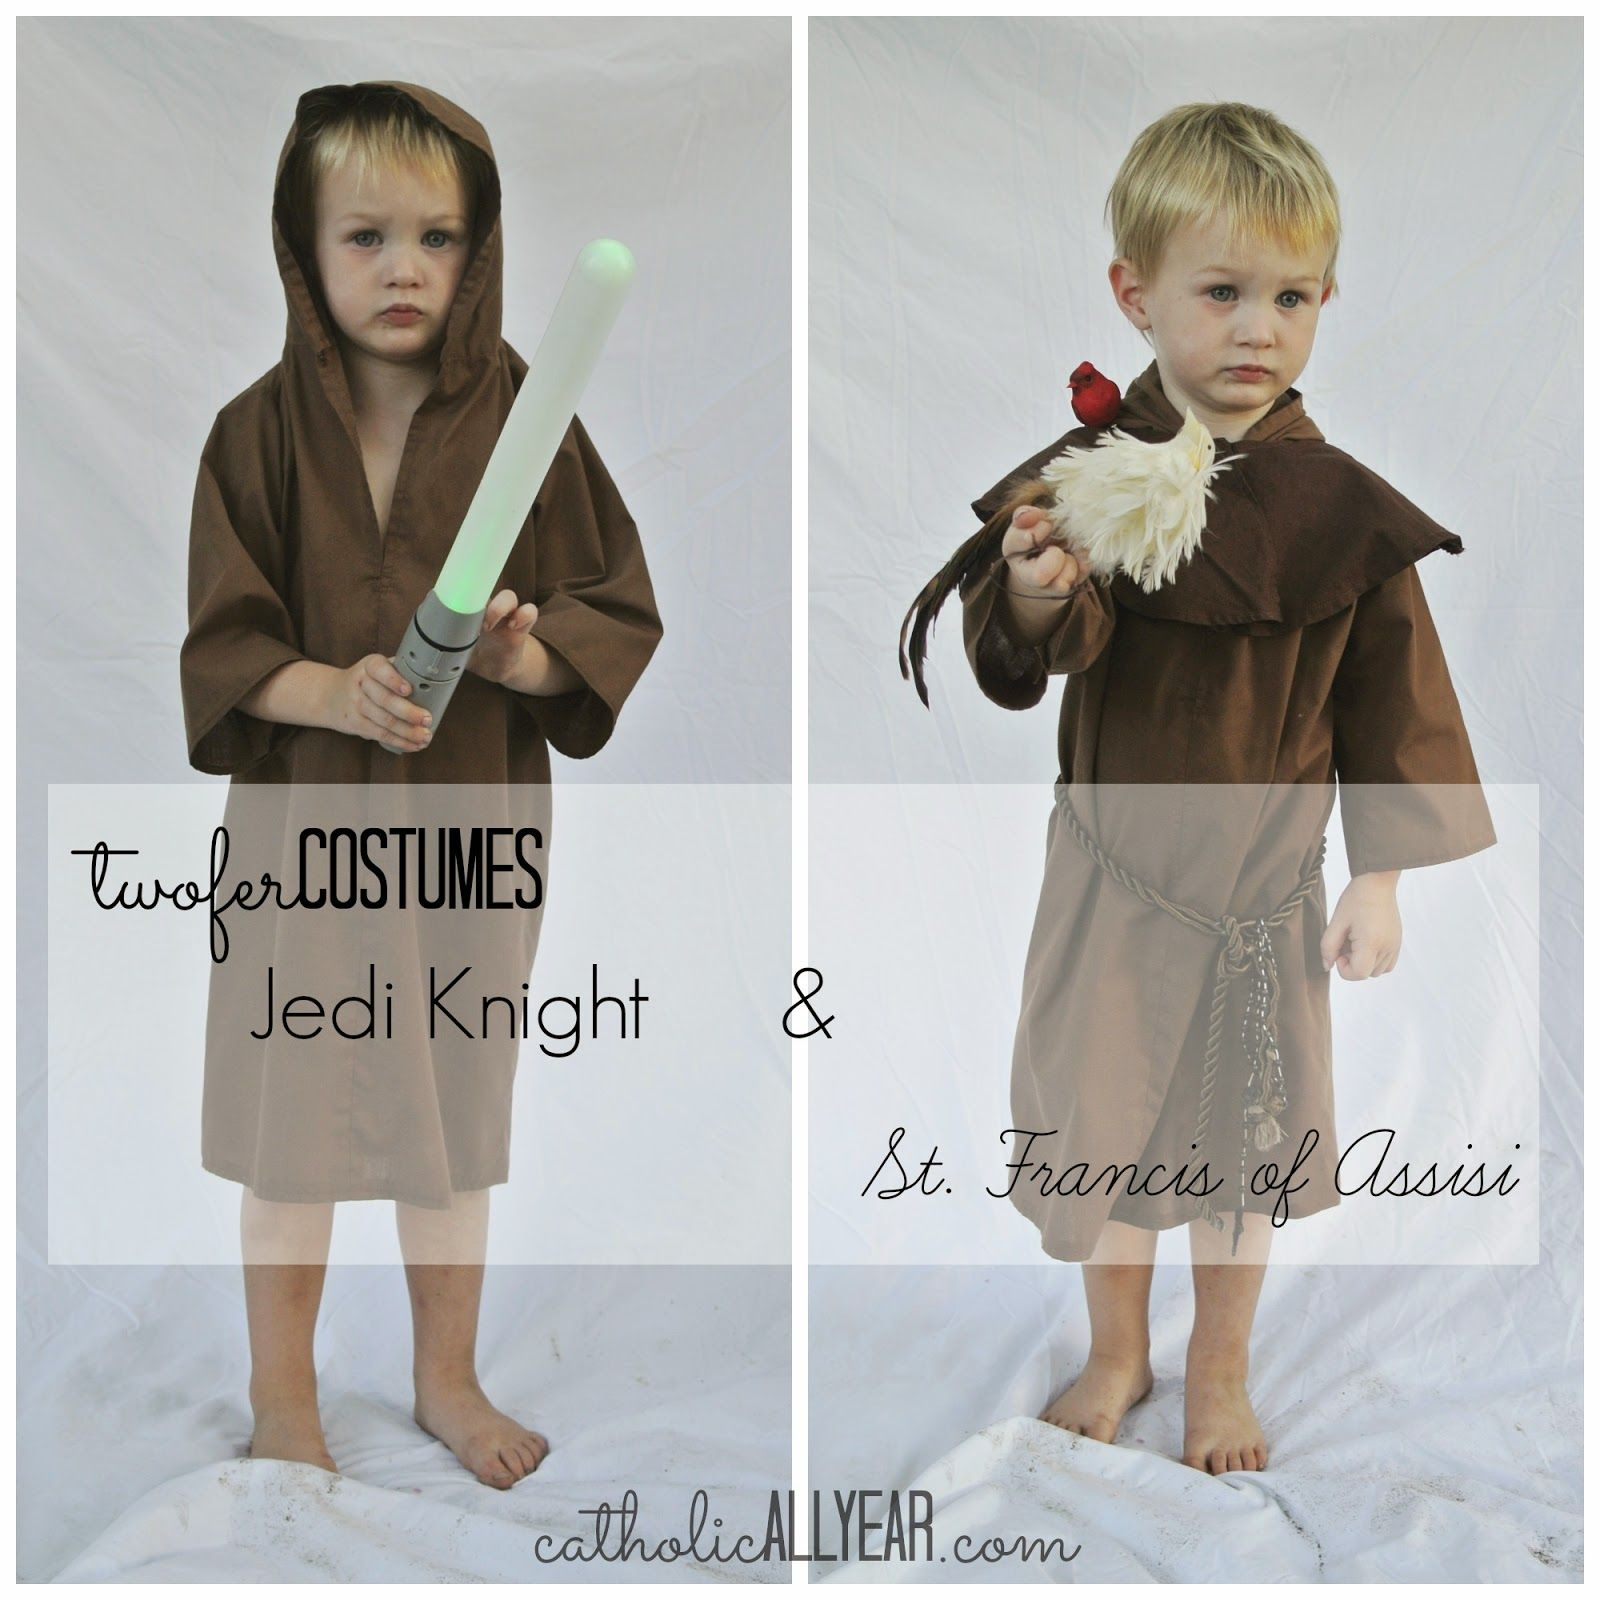 catholic all year: last minute twofer costumes for halloween and all